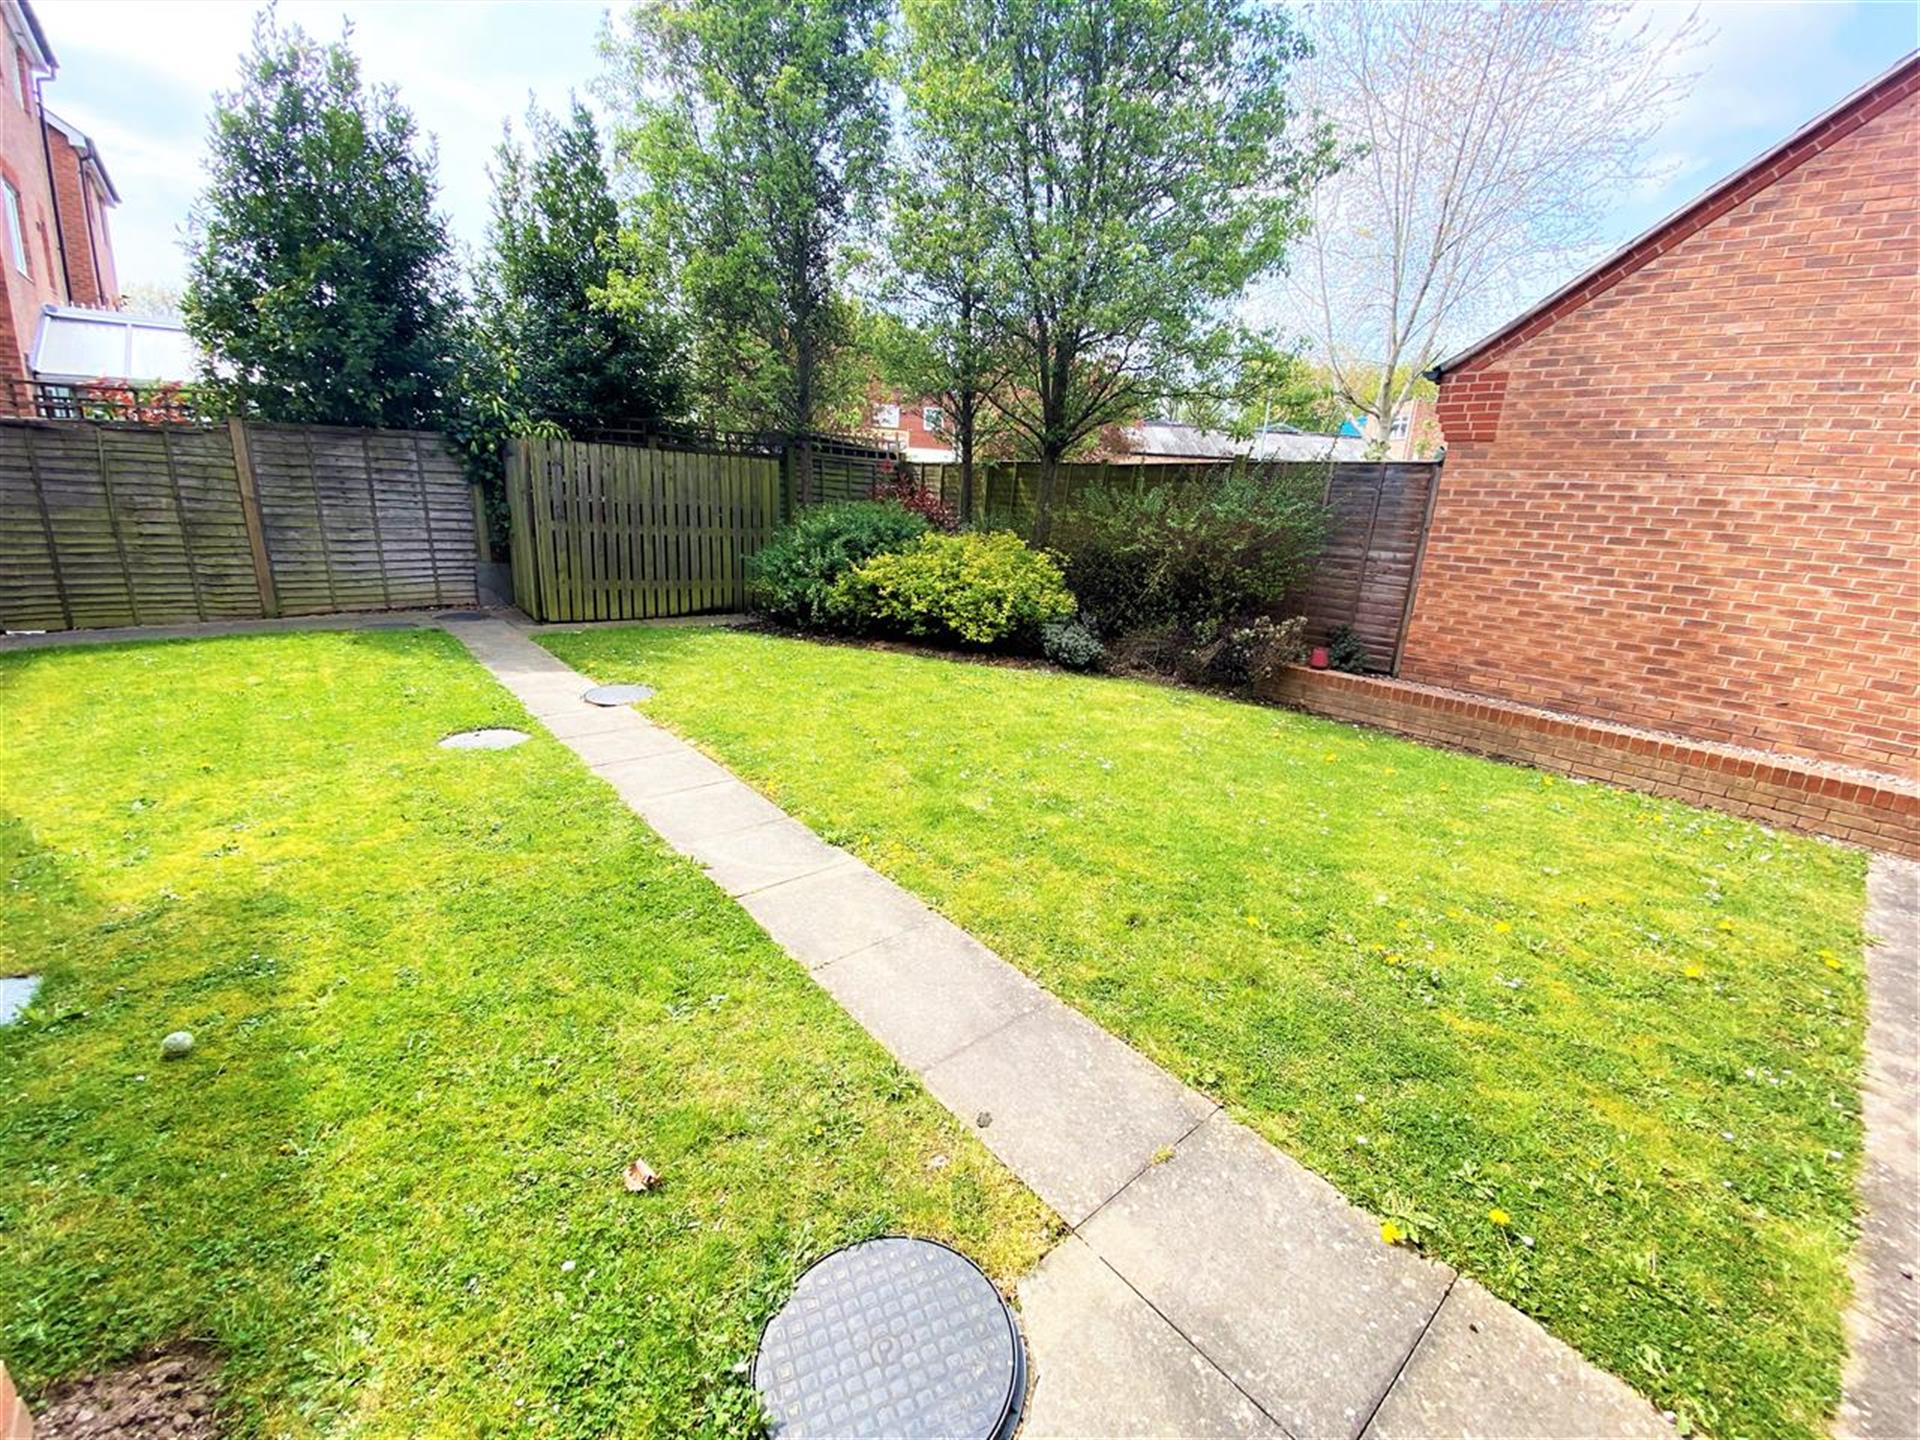 2 Bedroom Apartment Flat / Apartment For Sale - Communal Gardens